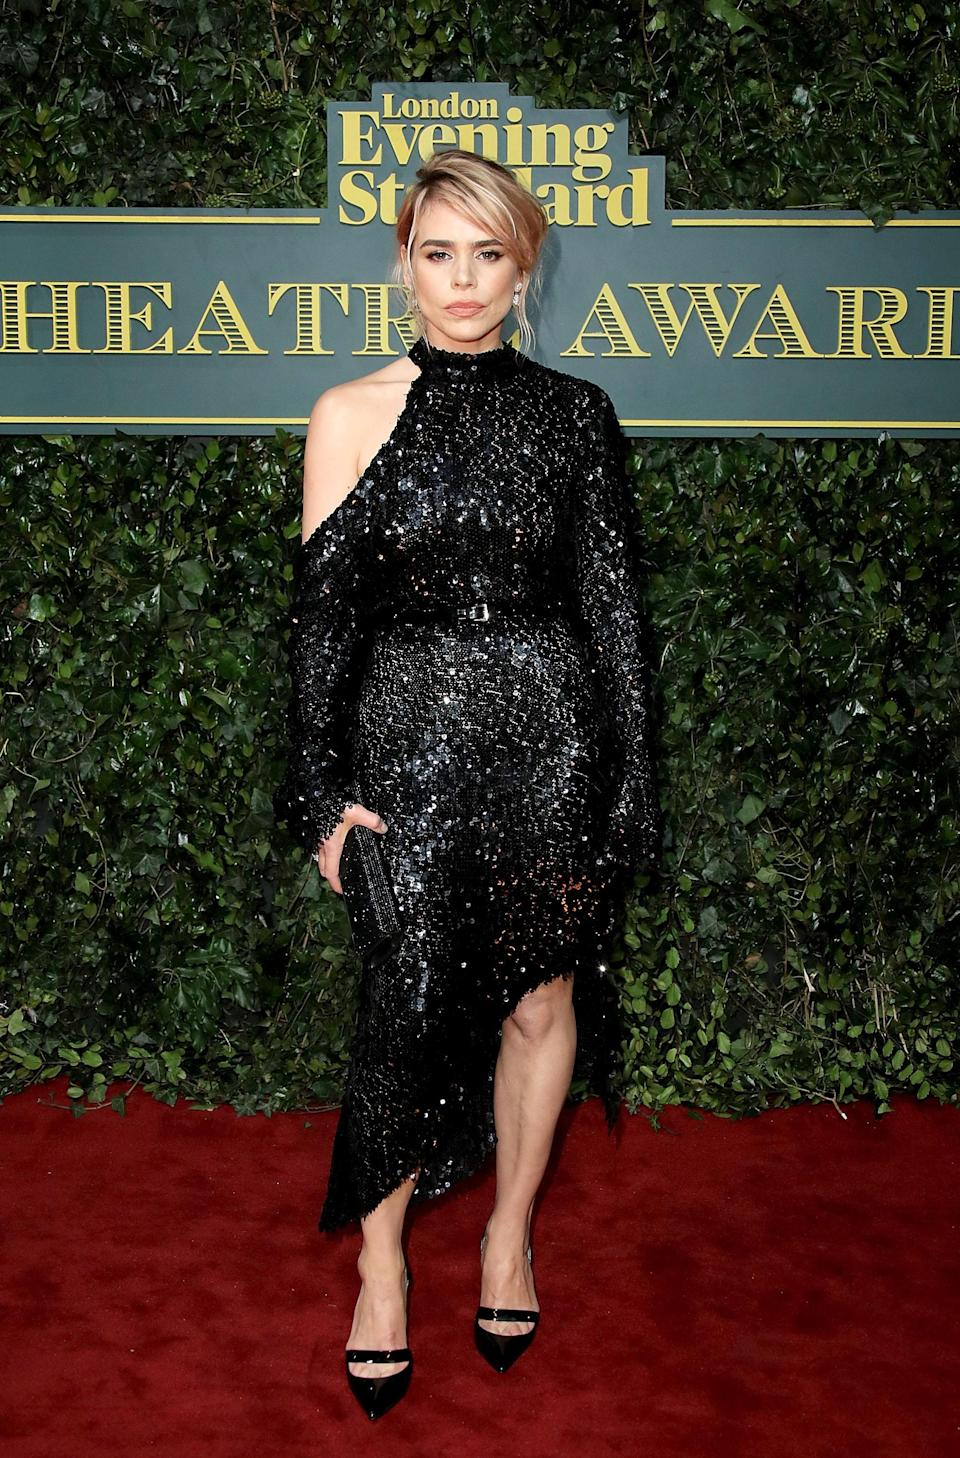 <p>The winner of the 2016 Best Actress award showed up in an asymmetric black sequinned dress. <i>[Photo: Getty]</i> </p>